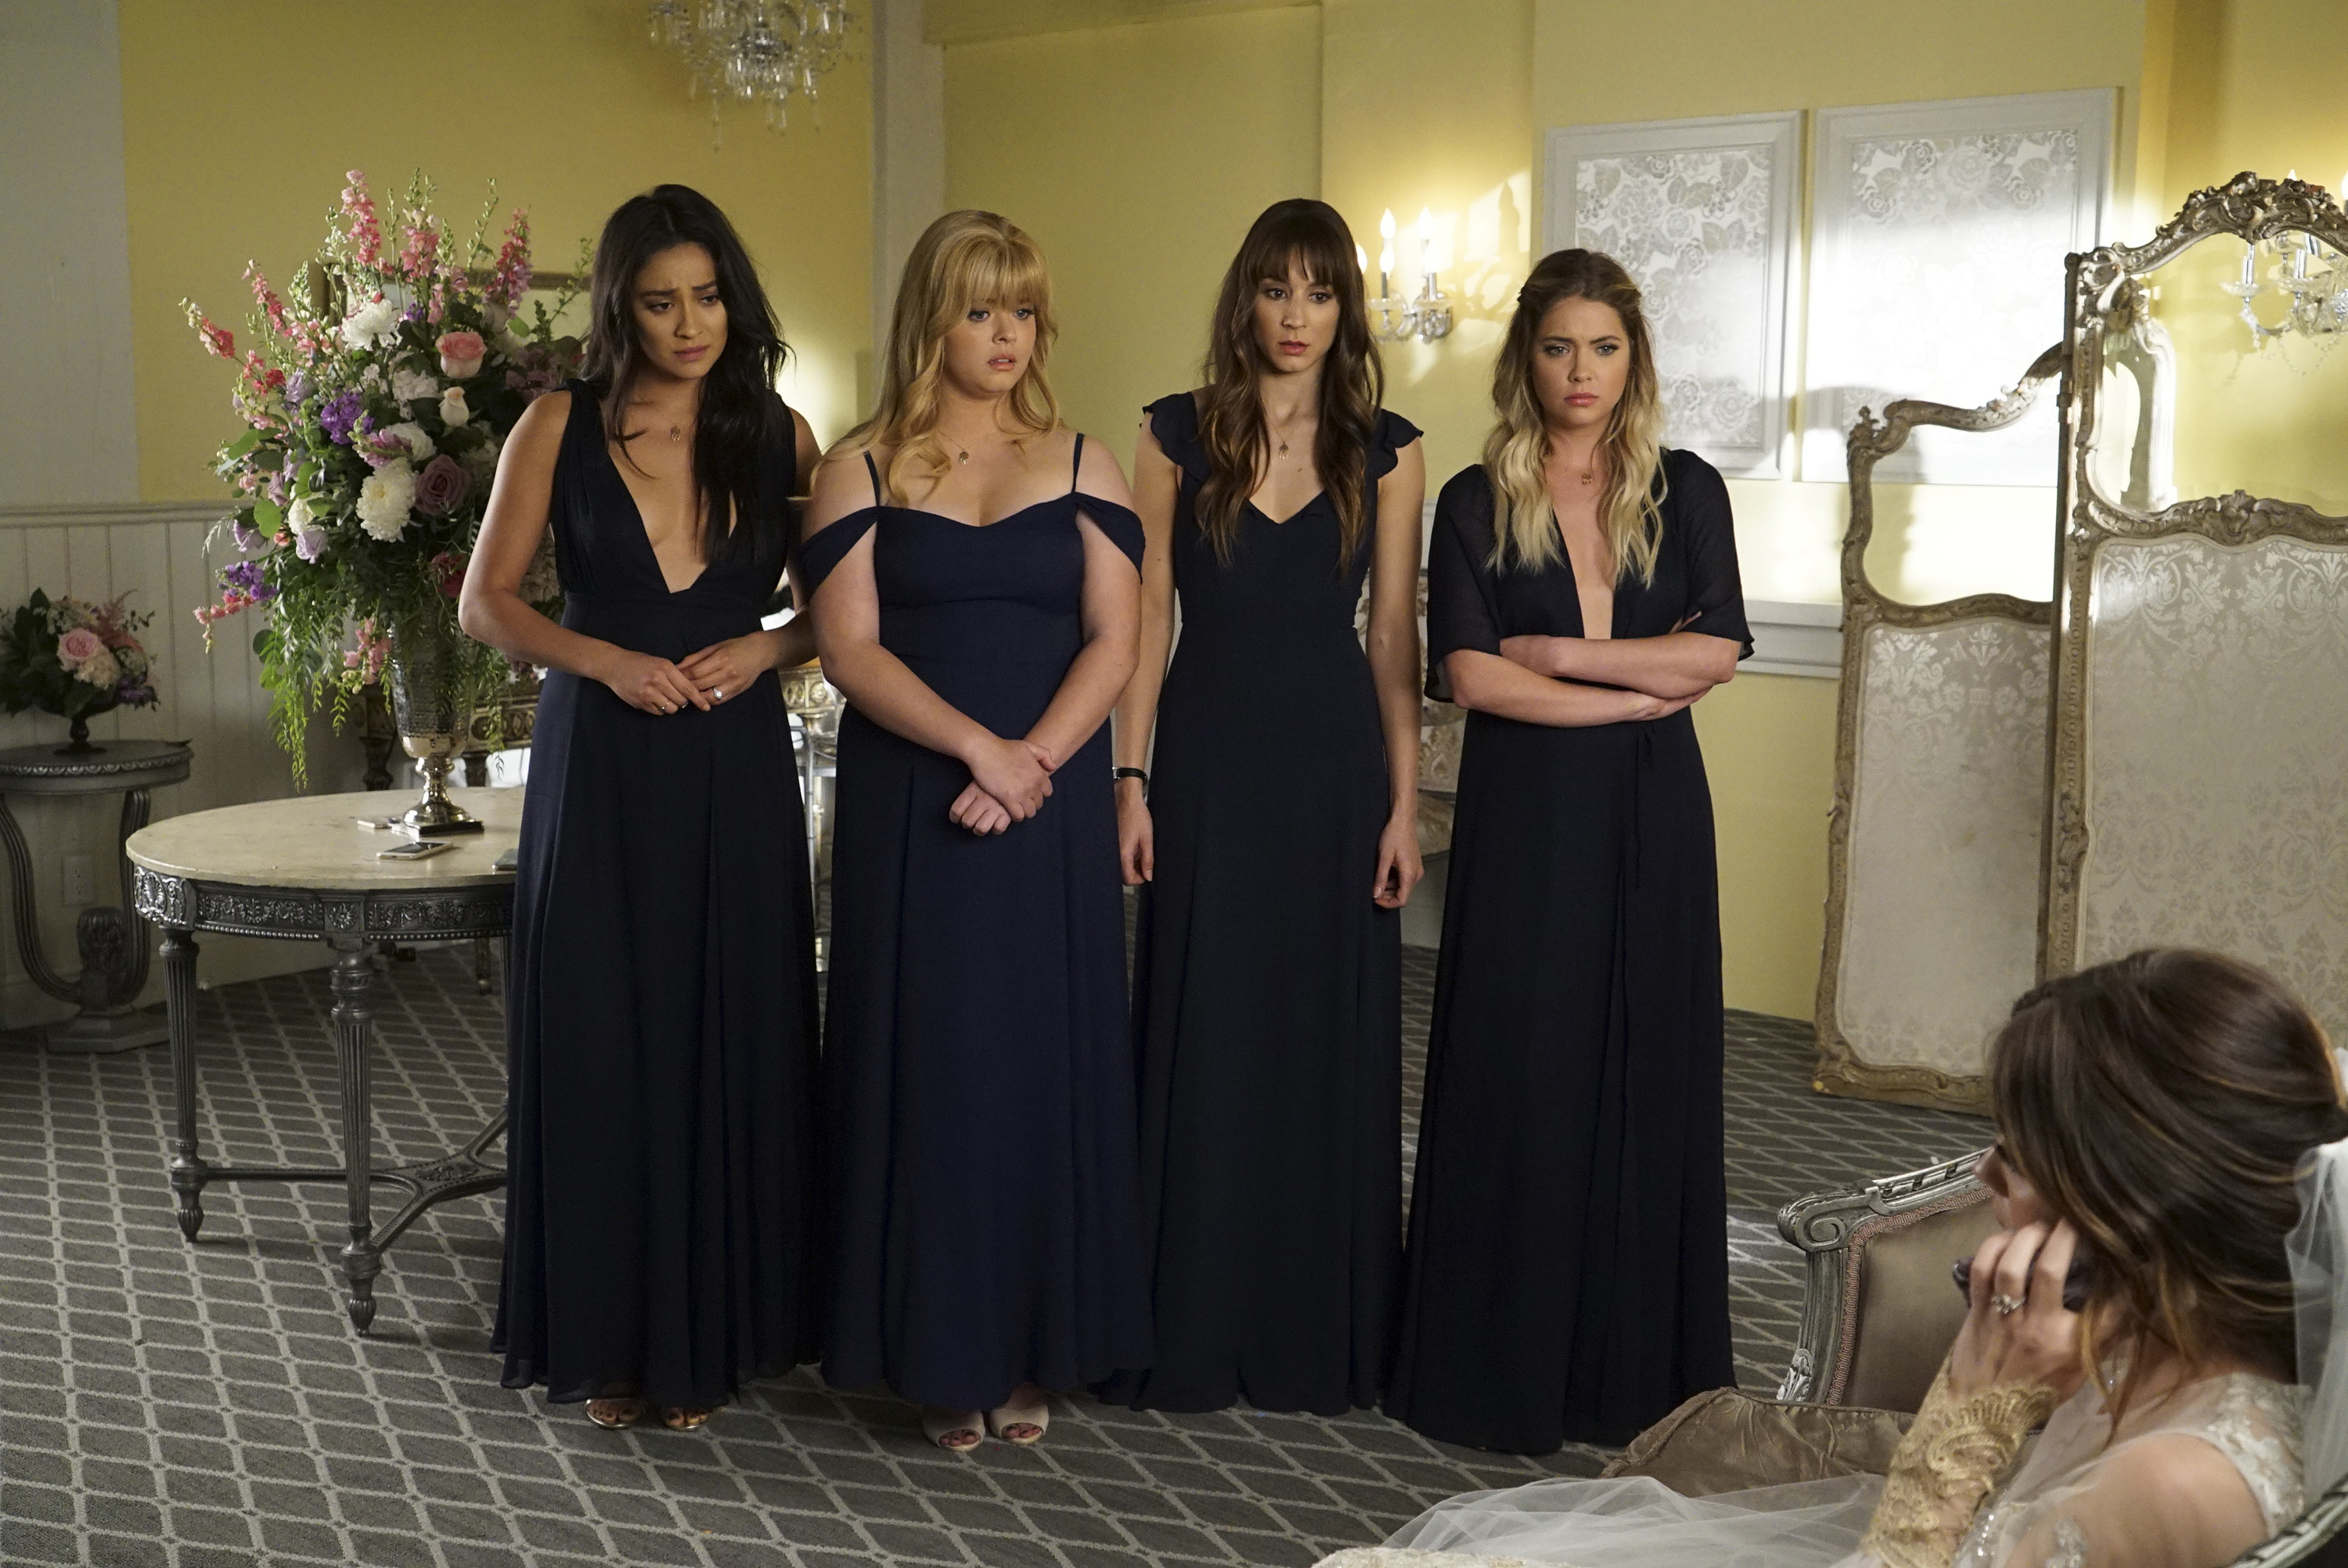 Aria S Wedding Dress On Pretty Little Liars Was A Design By Claire Pettibone